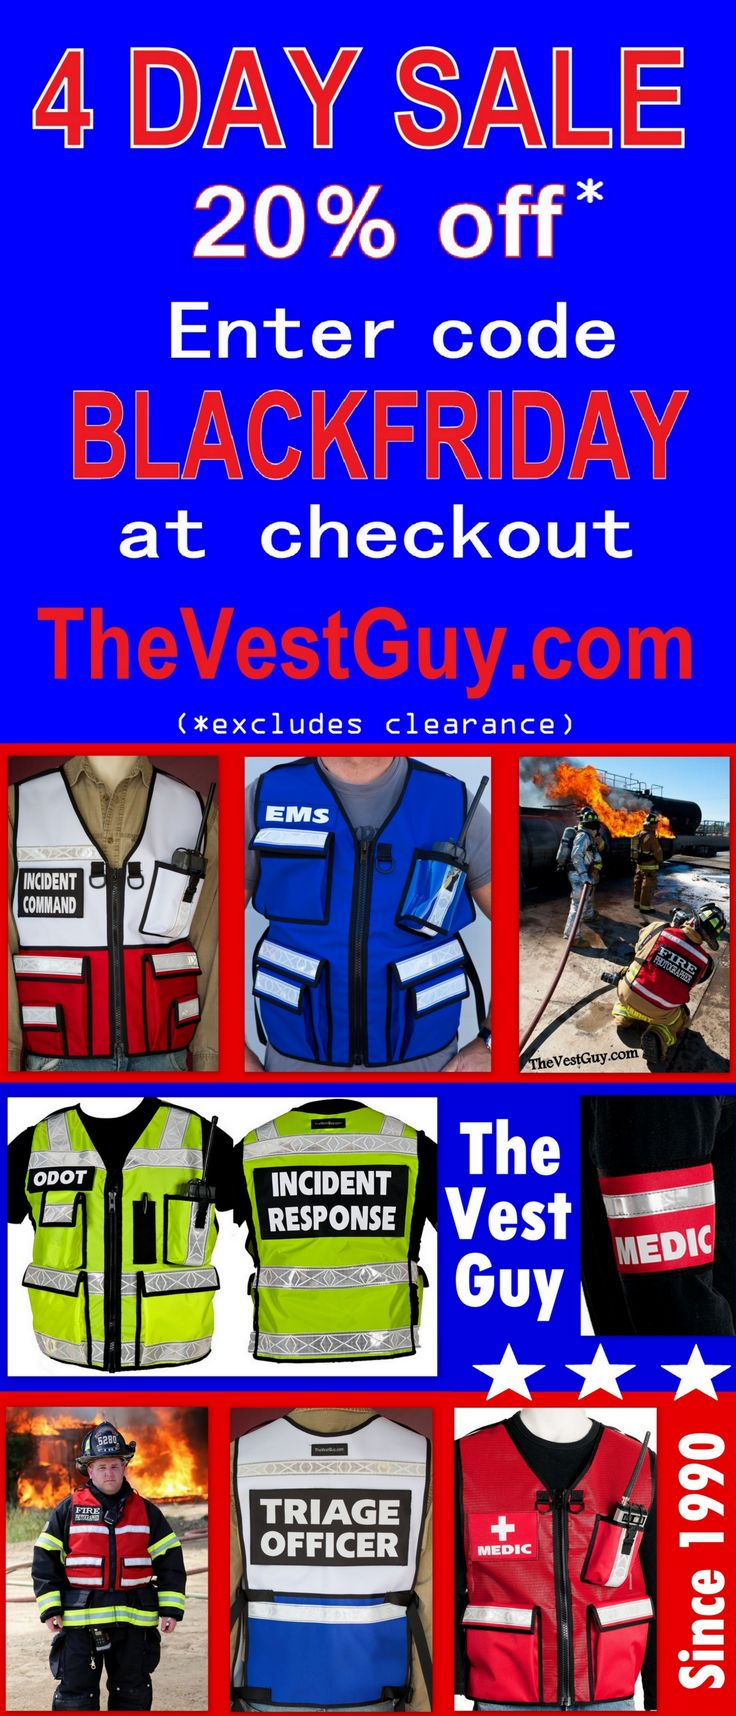 From armbands, safety reflective vests, photography vest, camera and shooter bean bags, P90 slings, and more, visit TheVestGuy.com and save 20%. Black Friday, Small Business Saturday, and Cyber Monday 4 day sales. Buy Made in America